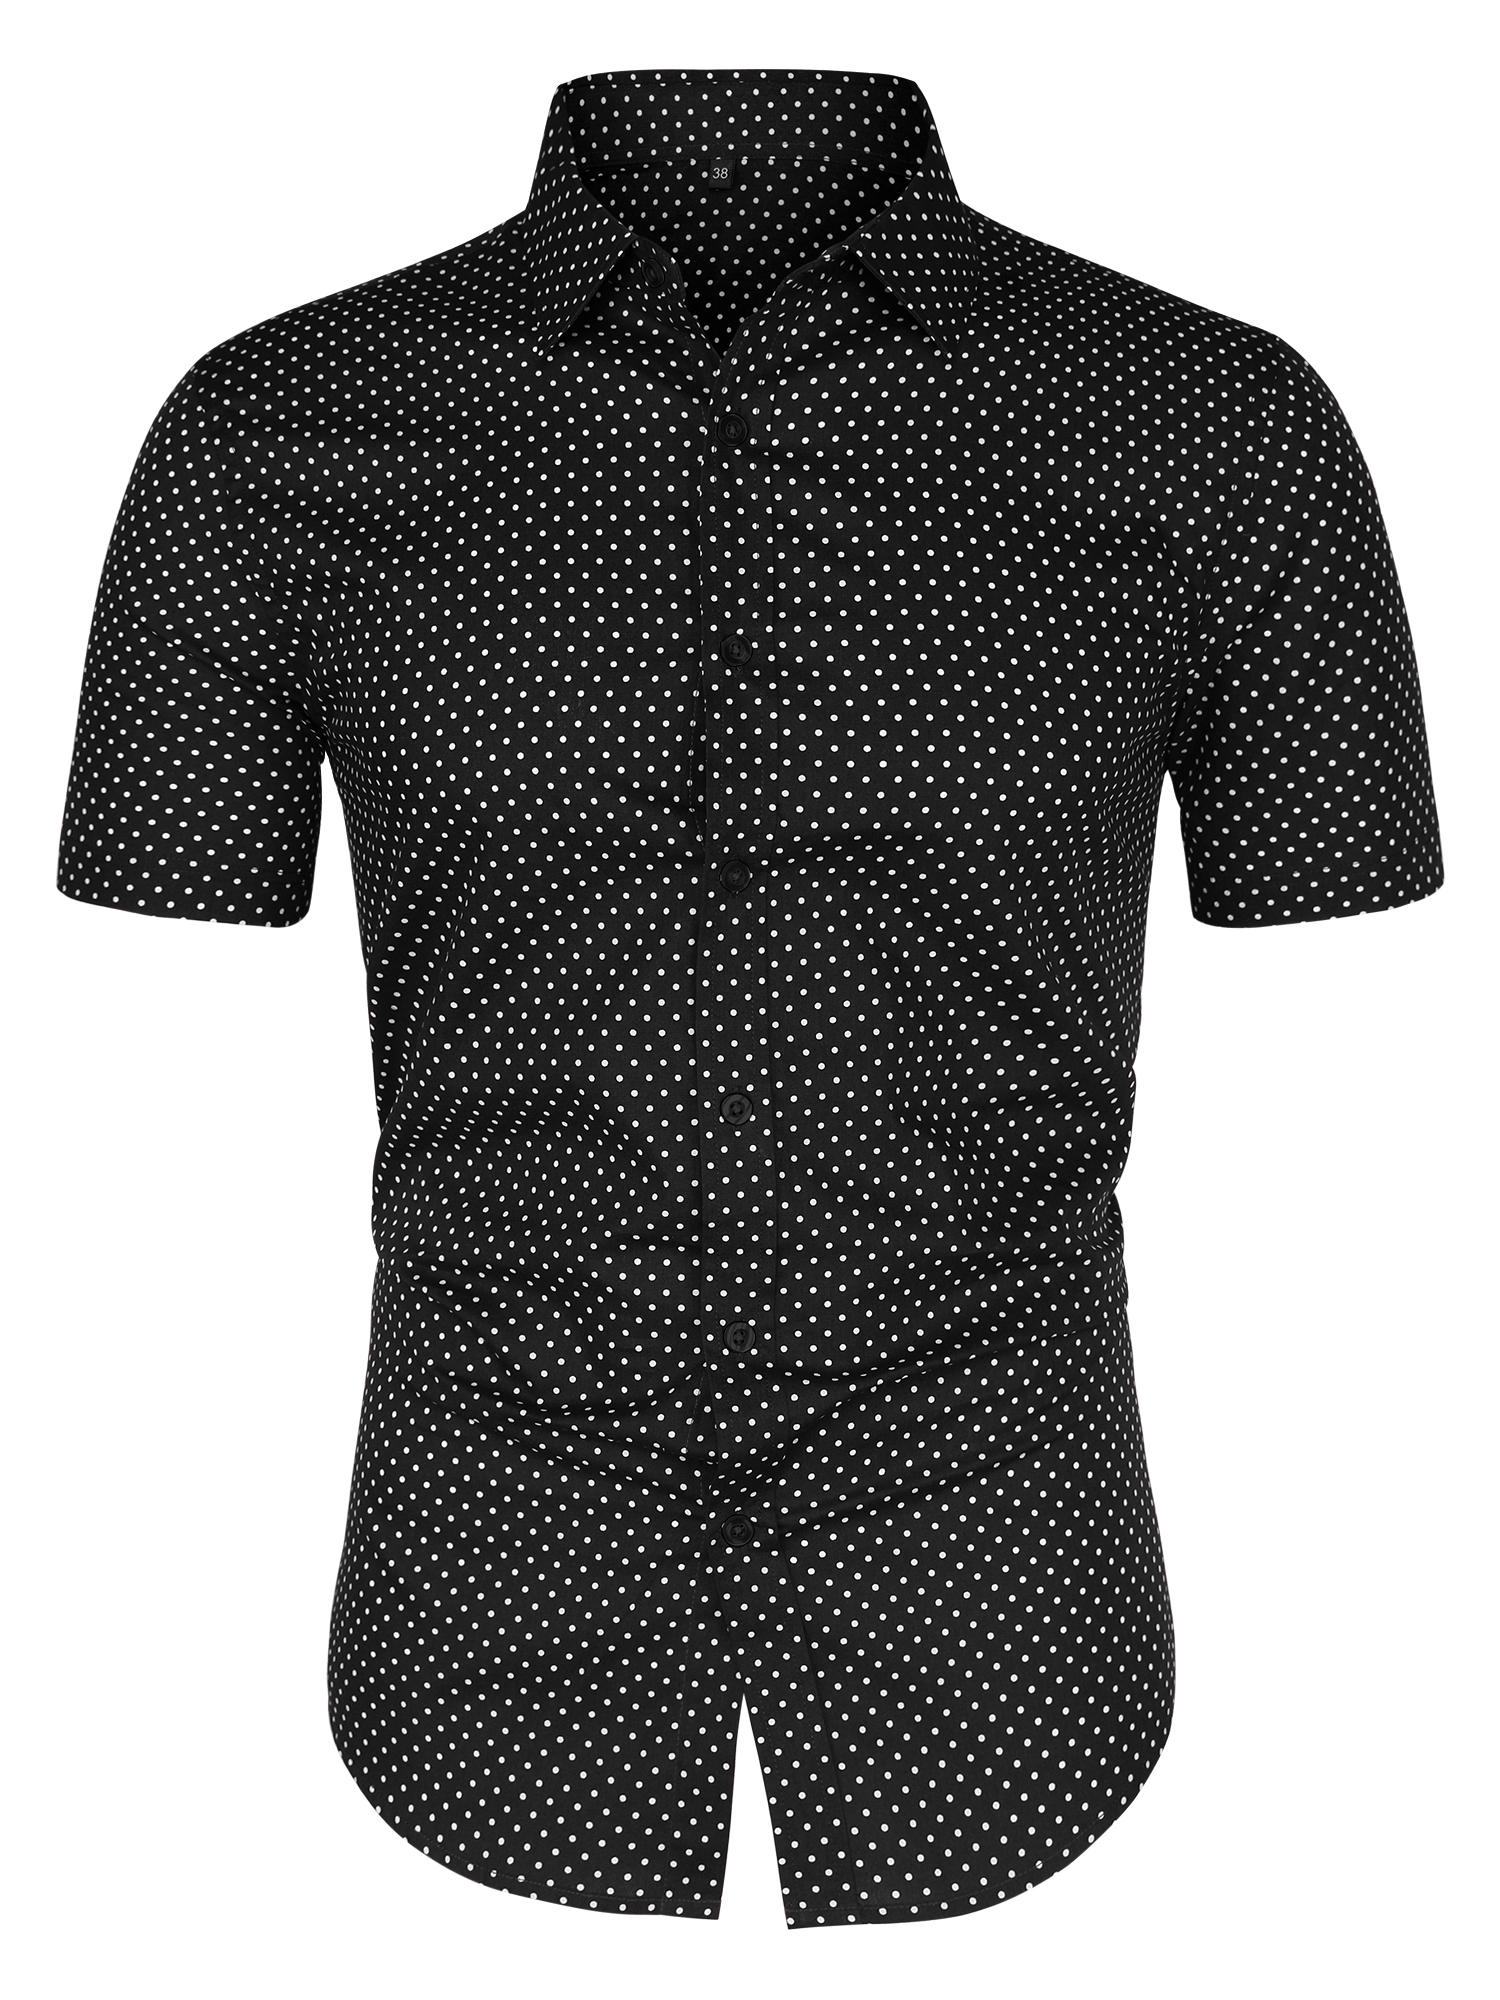 Men Short Sleeves Button Up Cotton Polka Dots Shirt Black L